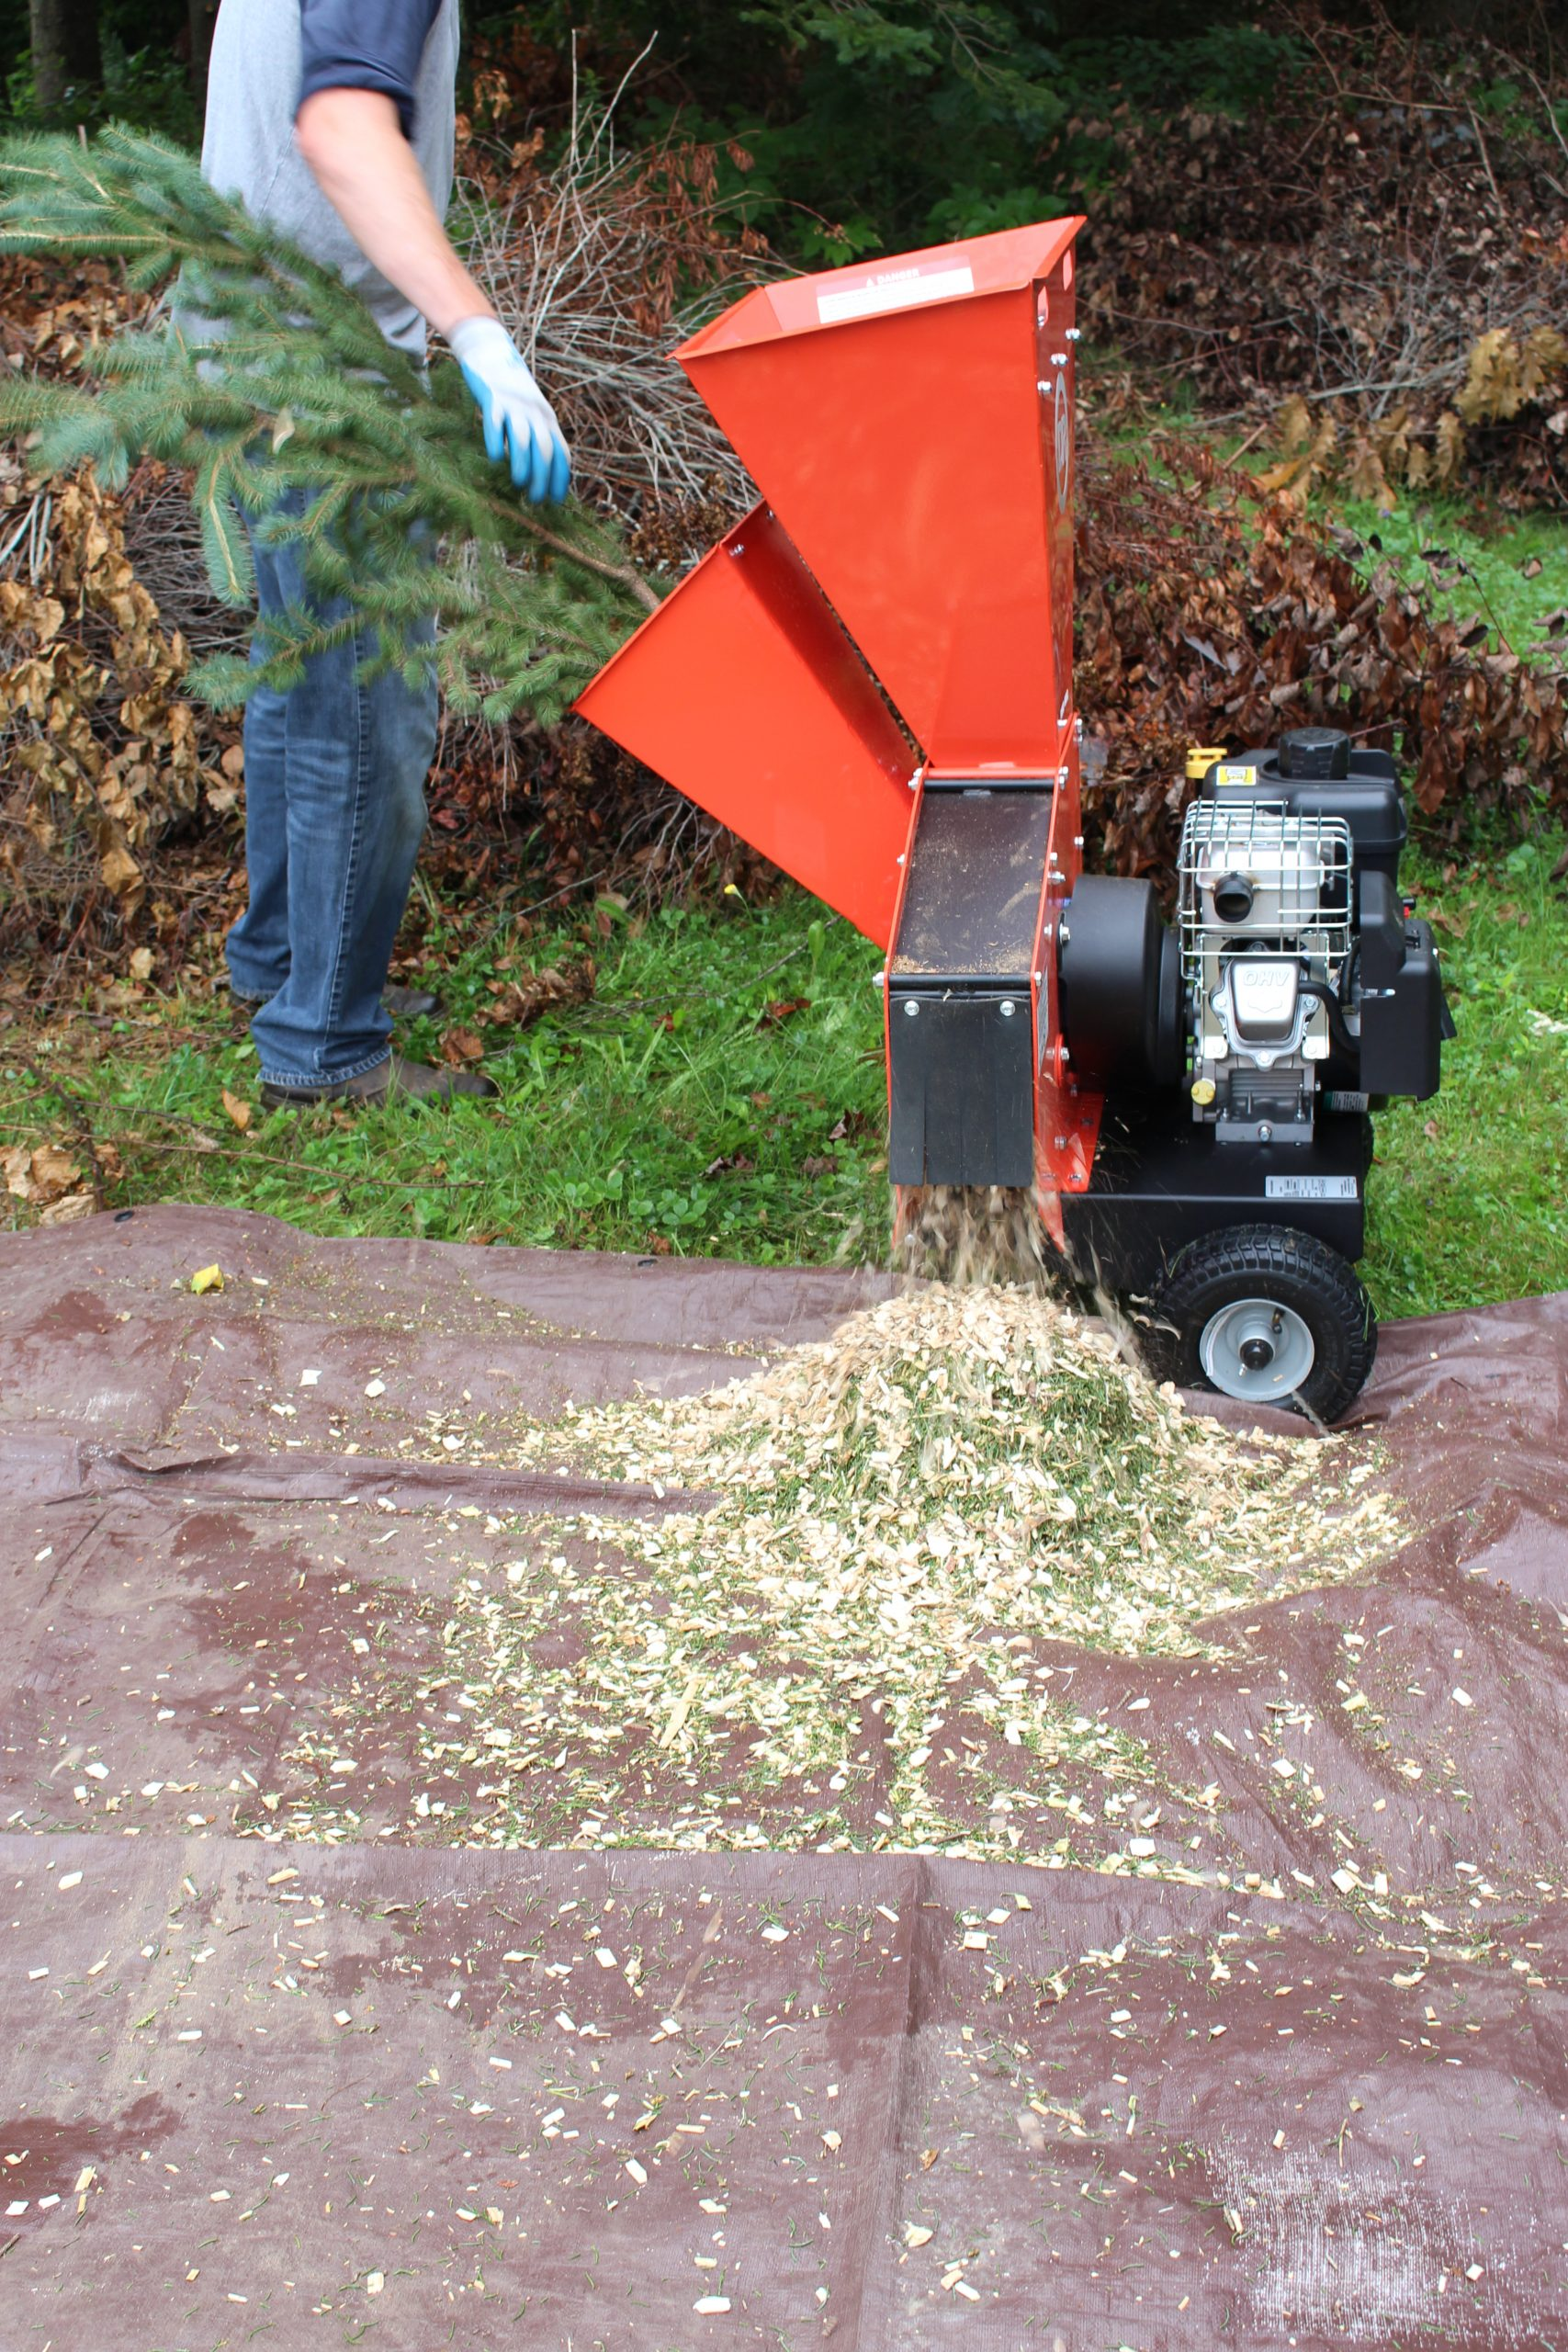 The HH Buys A DR Chipper Shredder PRO 400